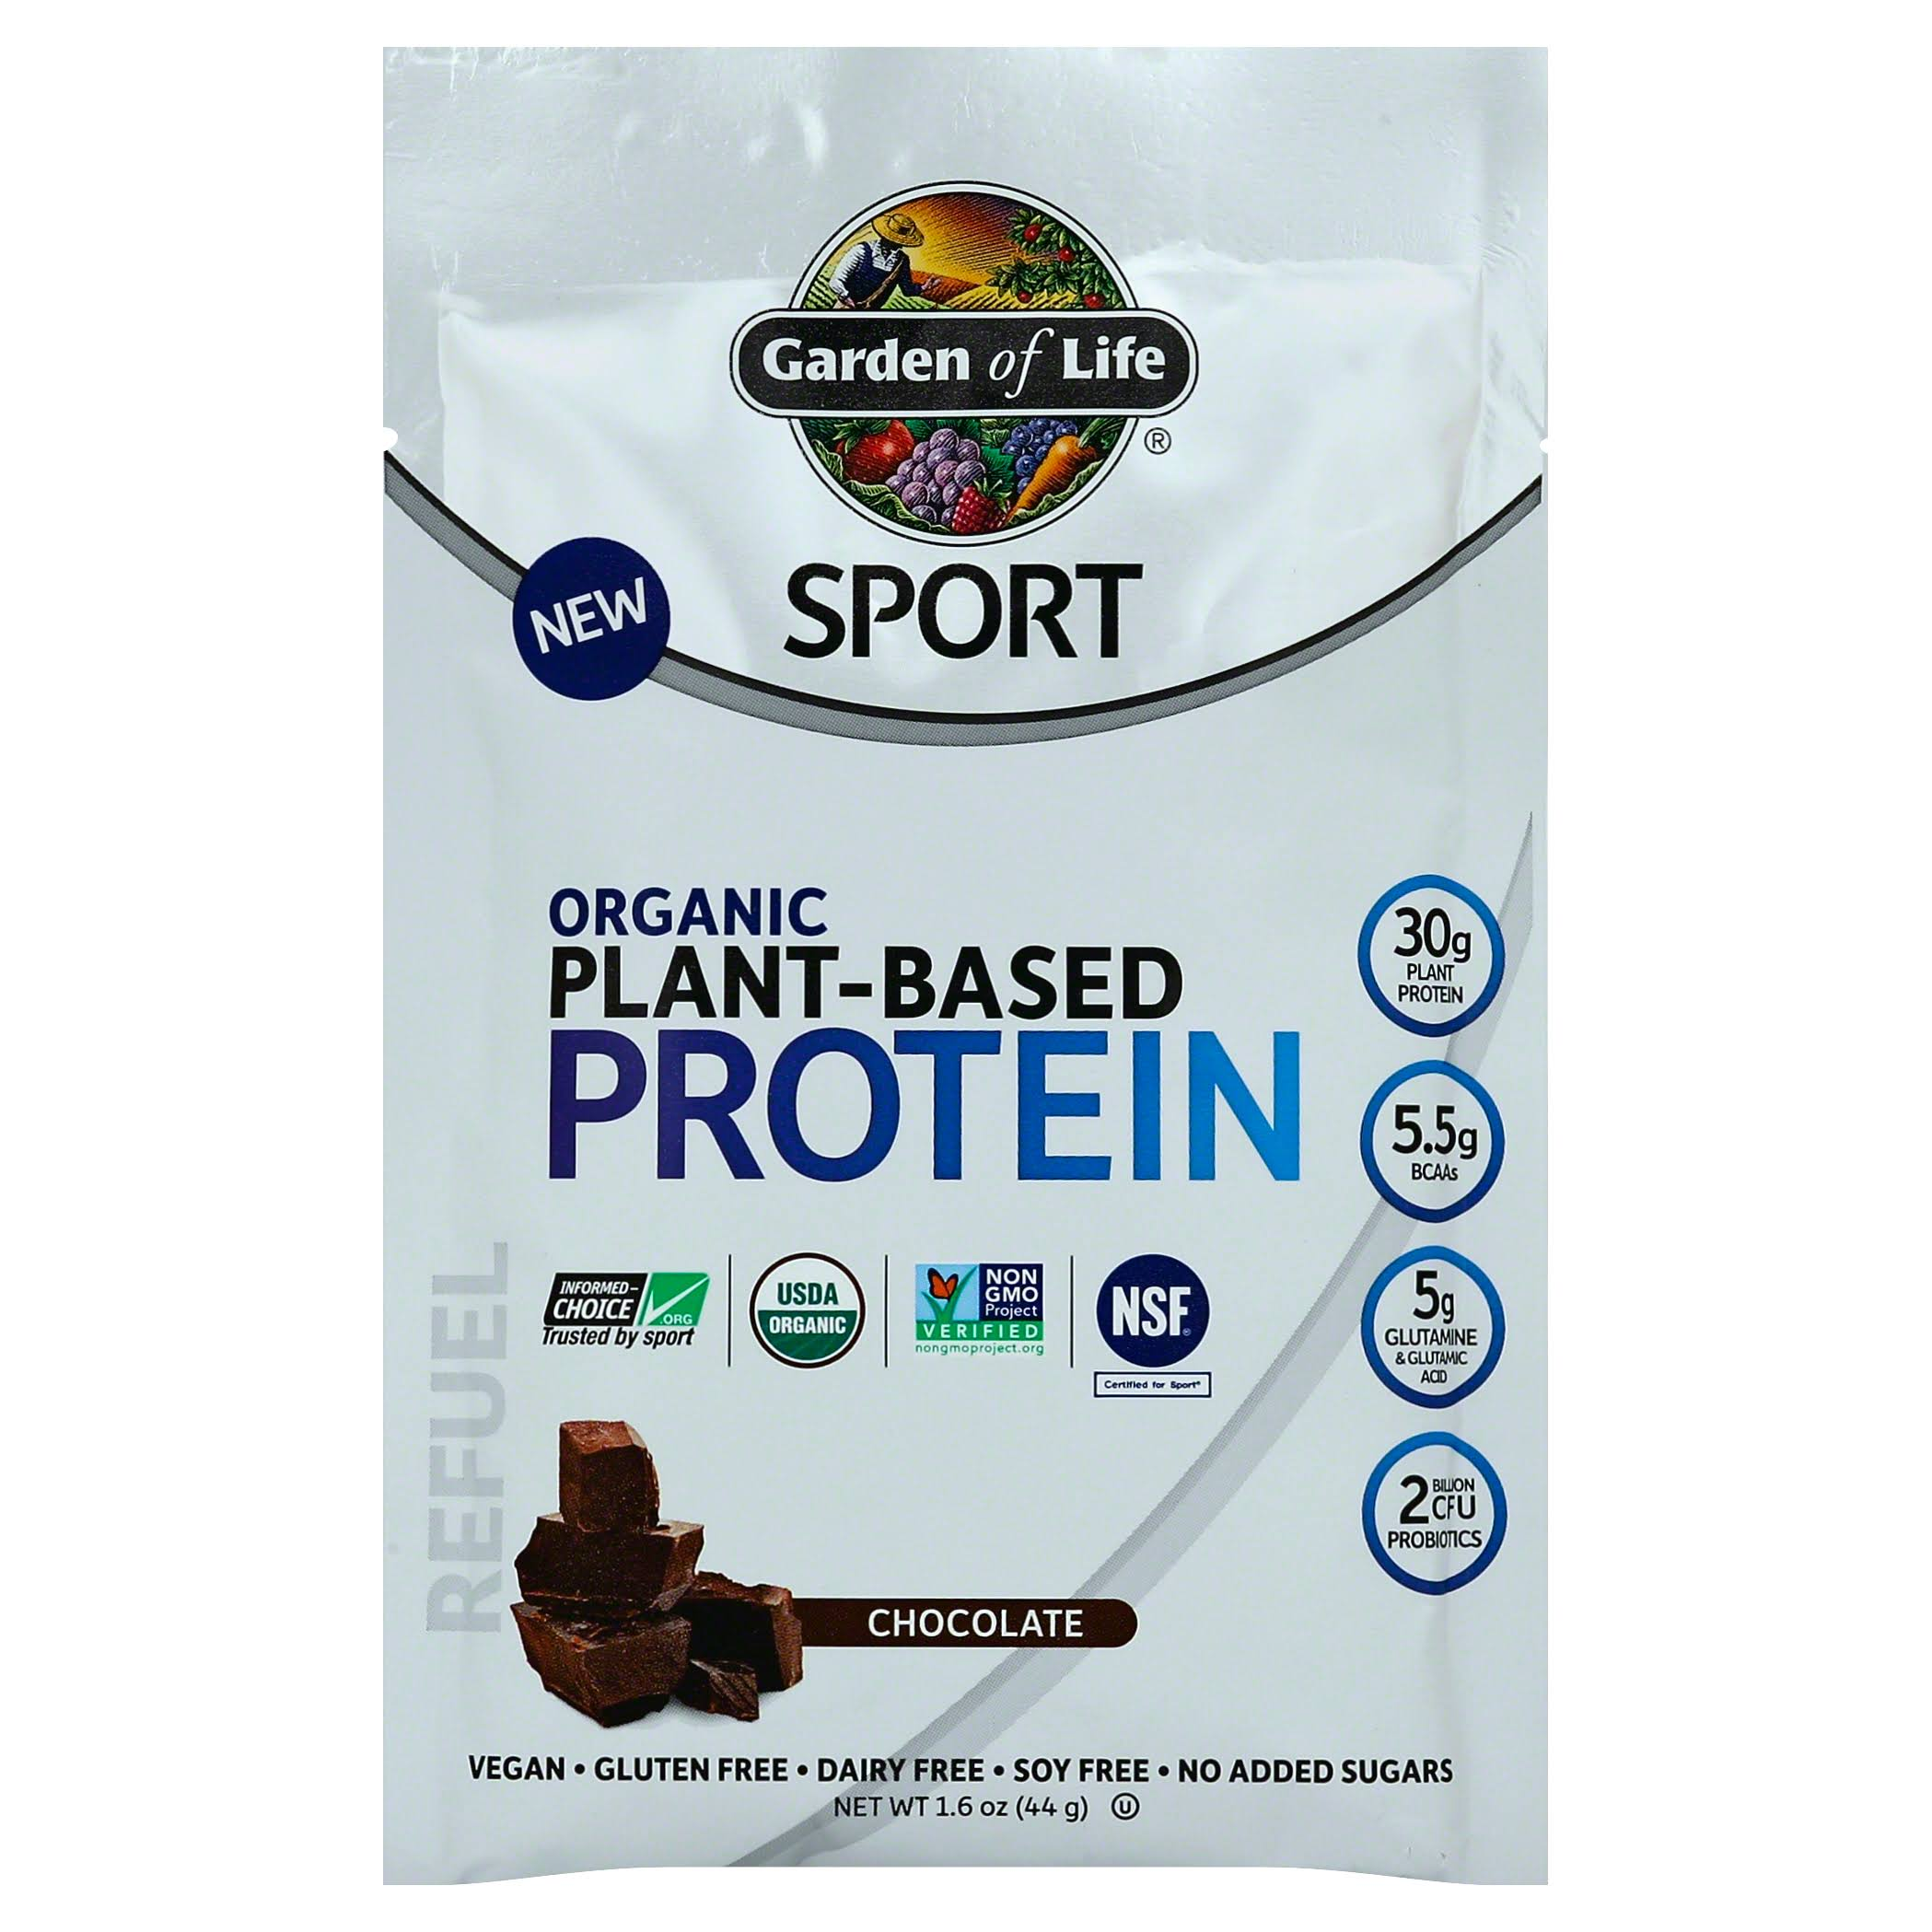 Garden of Life Sport Plant-Based Organic Protein, Chocolate - 1.6 oz packet